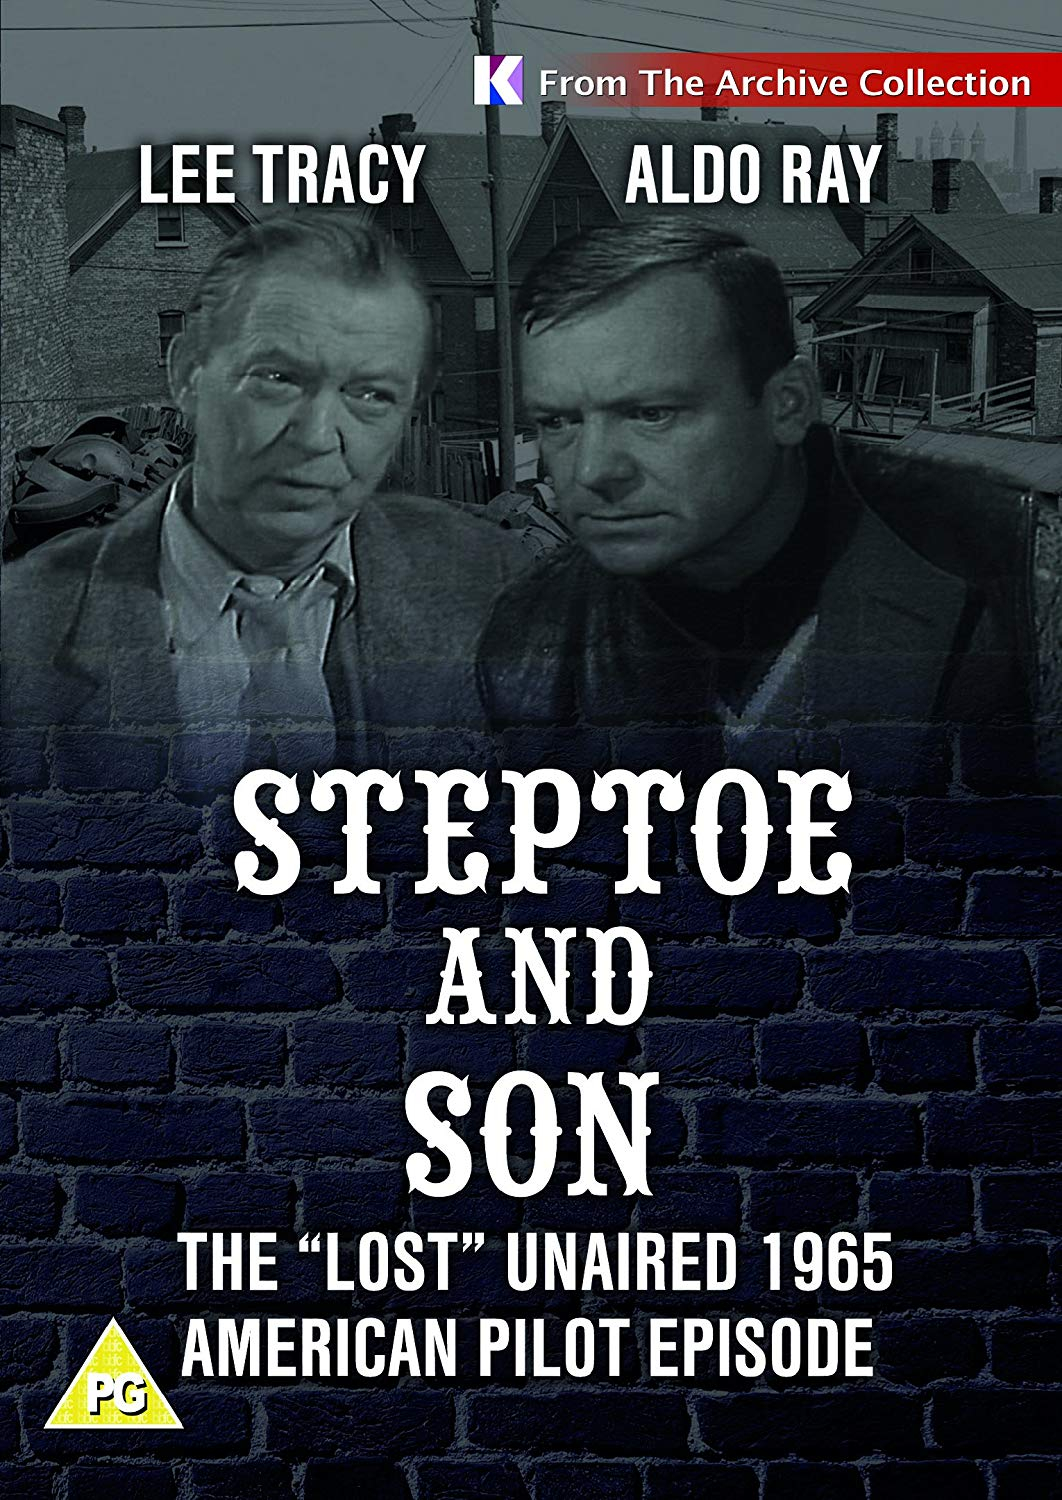 Buy Steptoe and Son: The American Pilot Episode